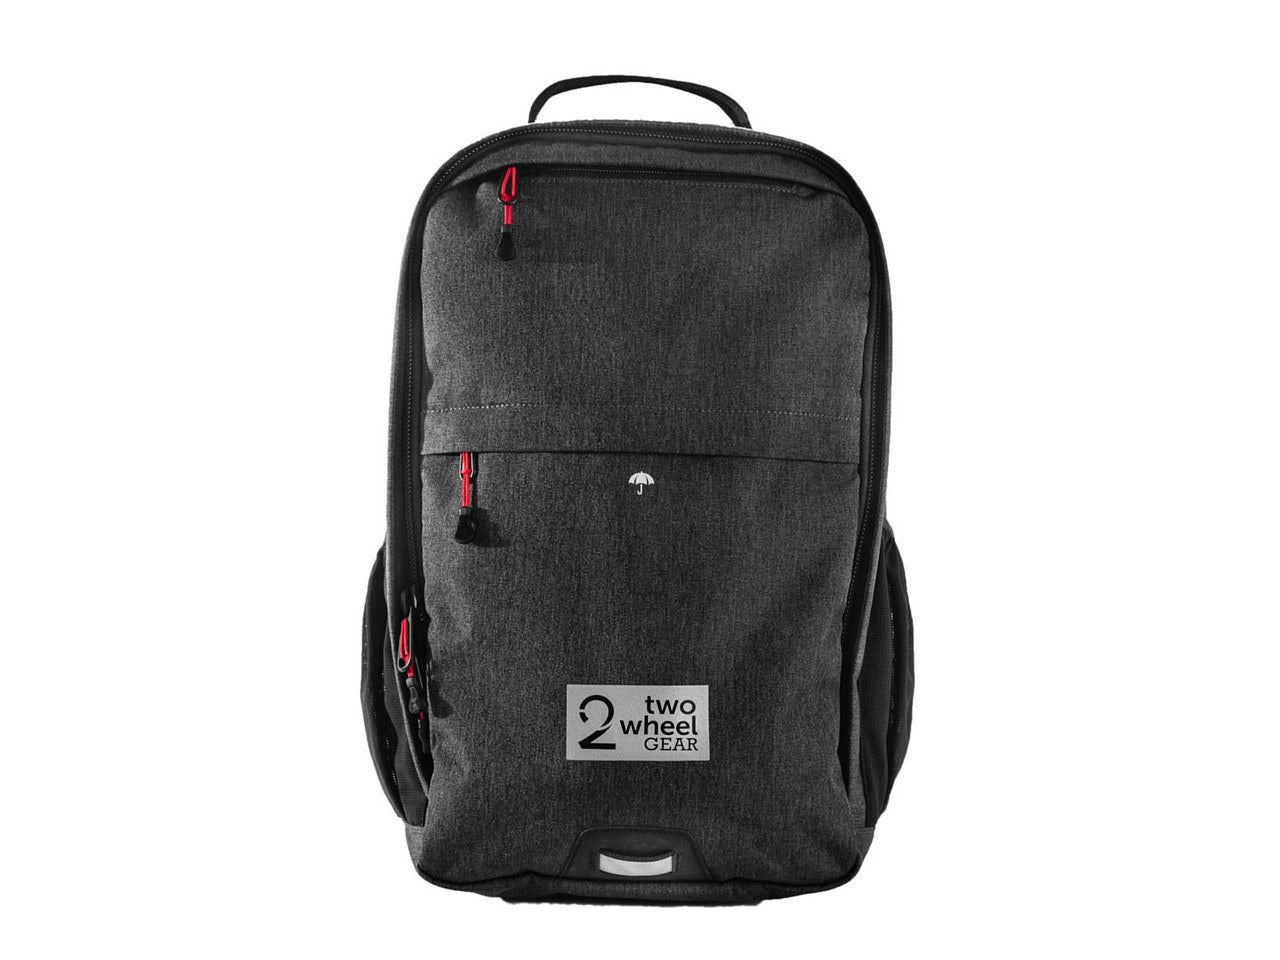 Pannier Backpack Convertible - Graphite , Bags - Two Wheel Gear, Two Wheel Gear - 5